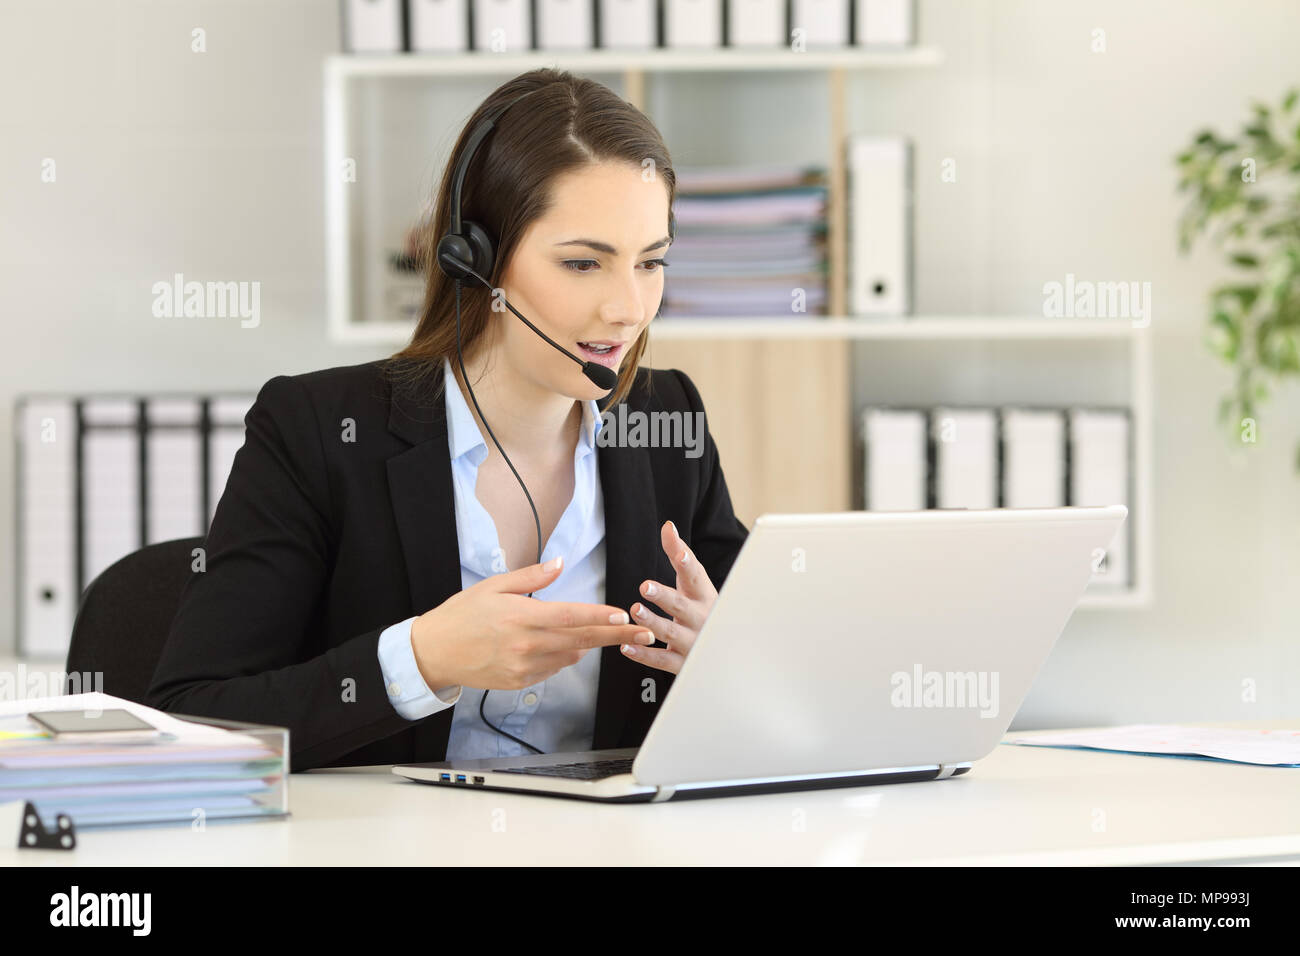 Telemarketer talking on-line having a video call with a laptop at office Stock Photo